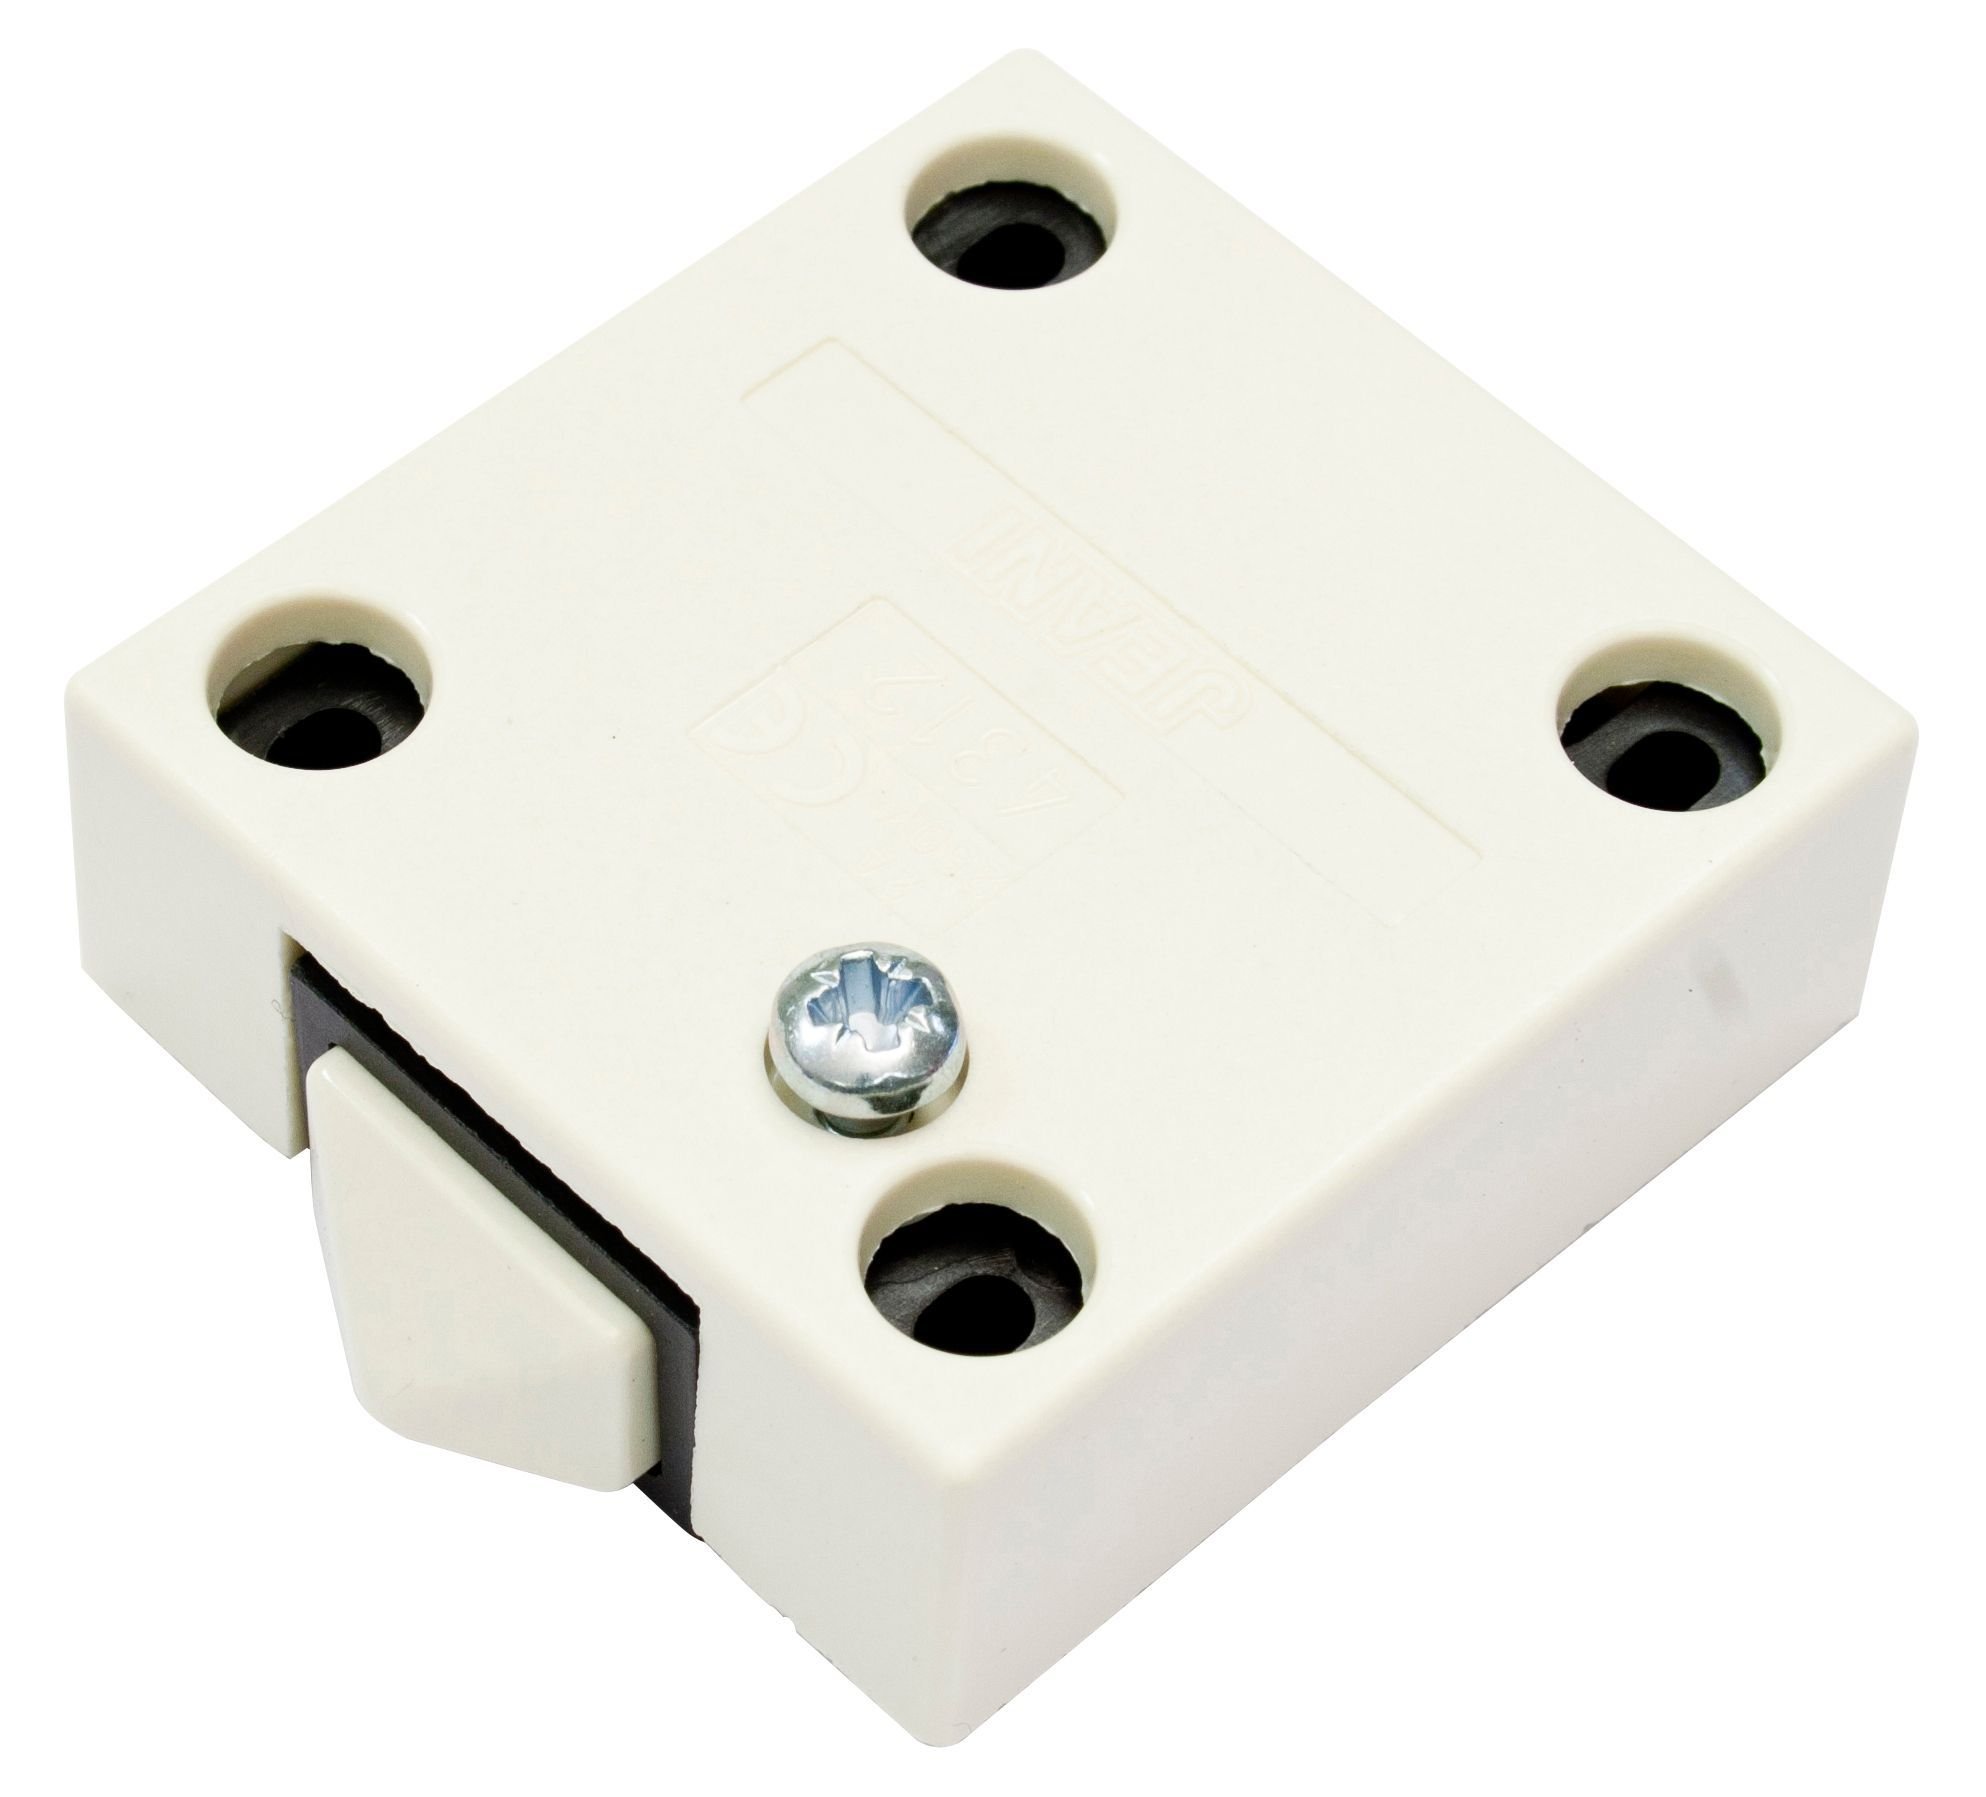 sc 1 st  B\u0026Q & B\u0026Q Cream Door Operated Cabinet Switch | Departments | DIY at B\u0026Q